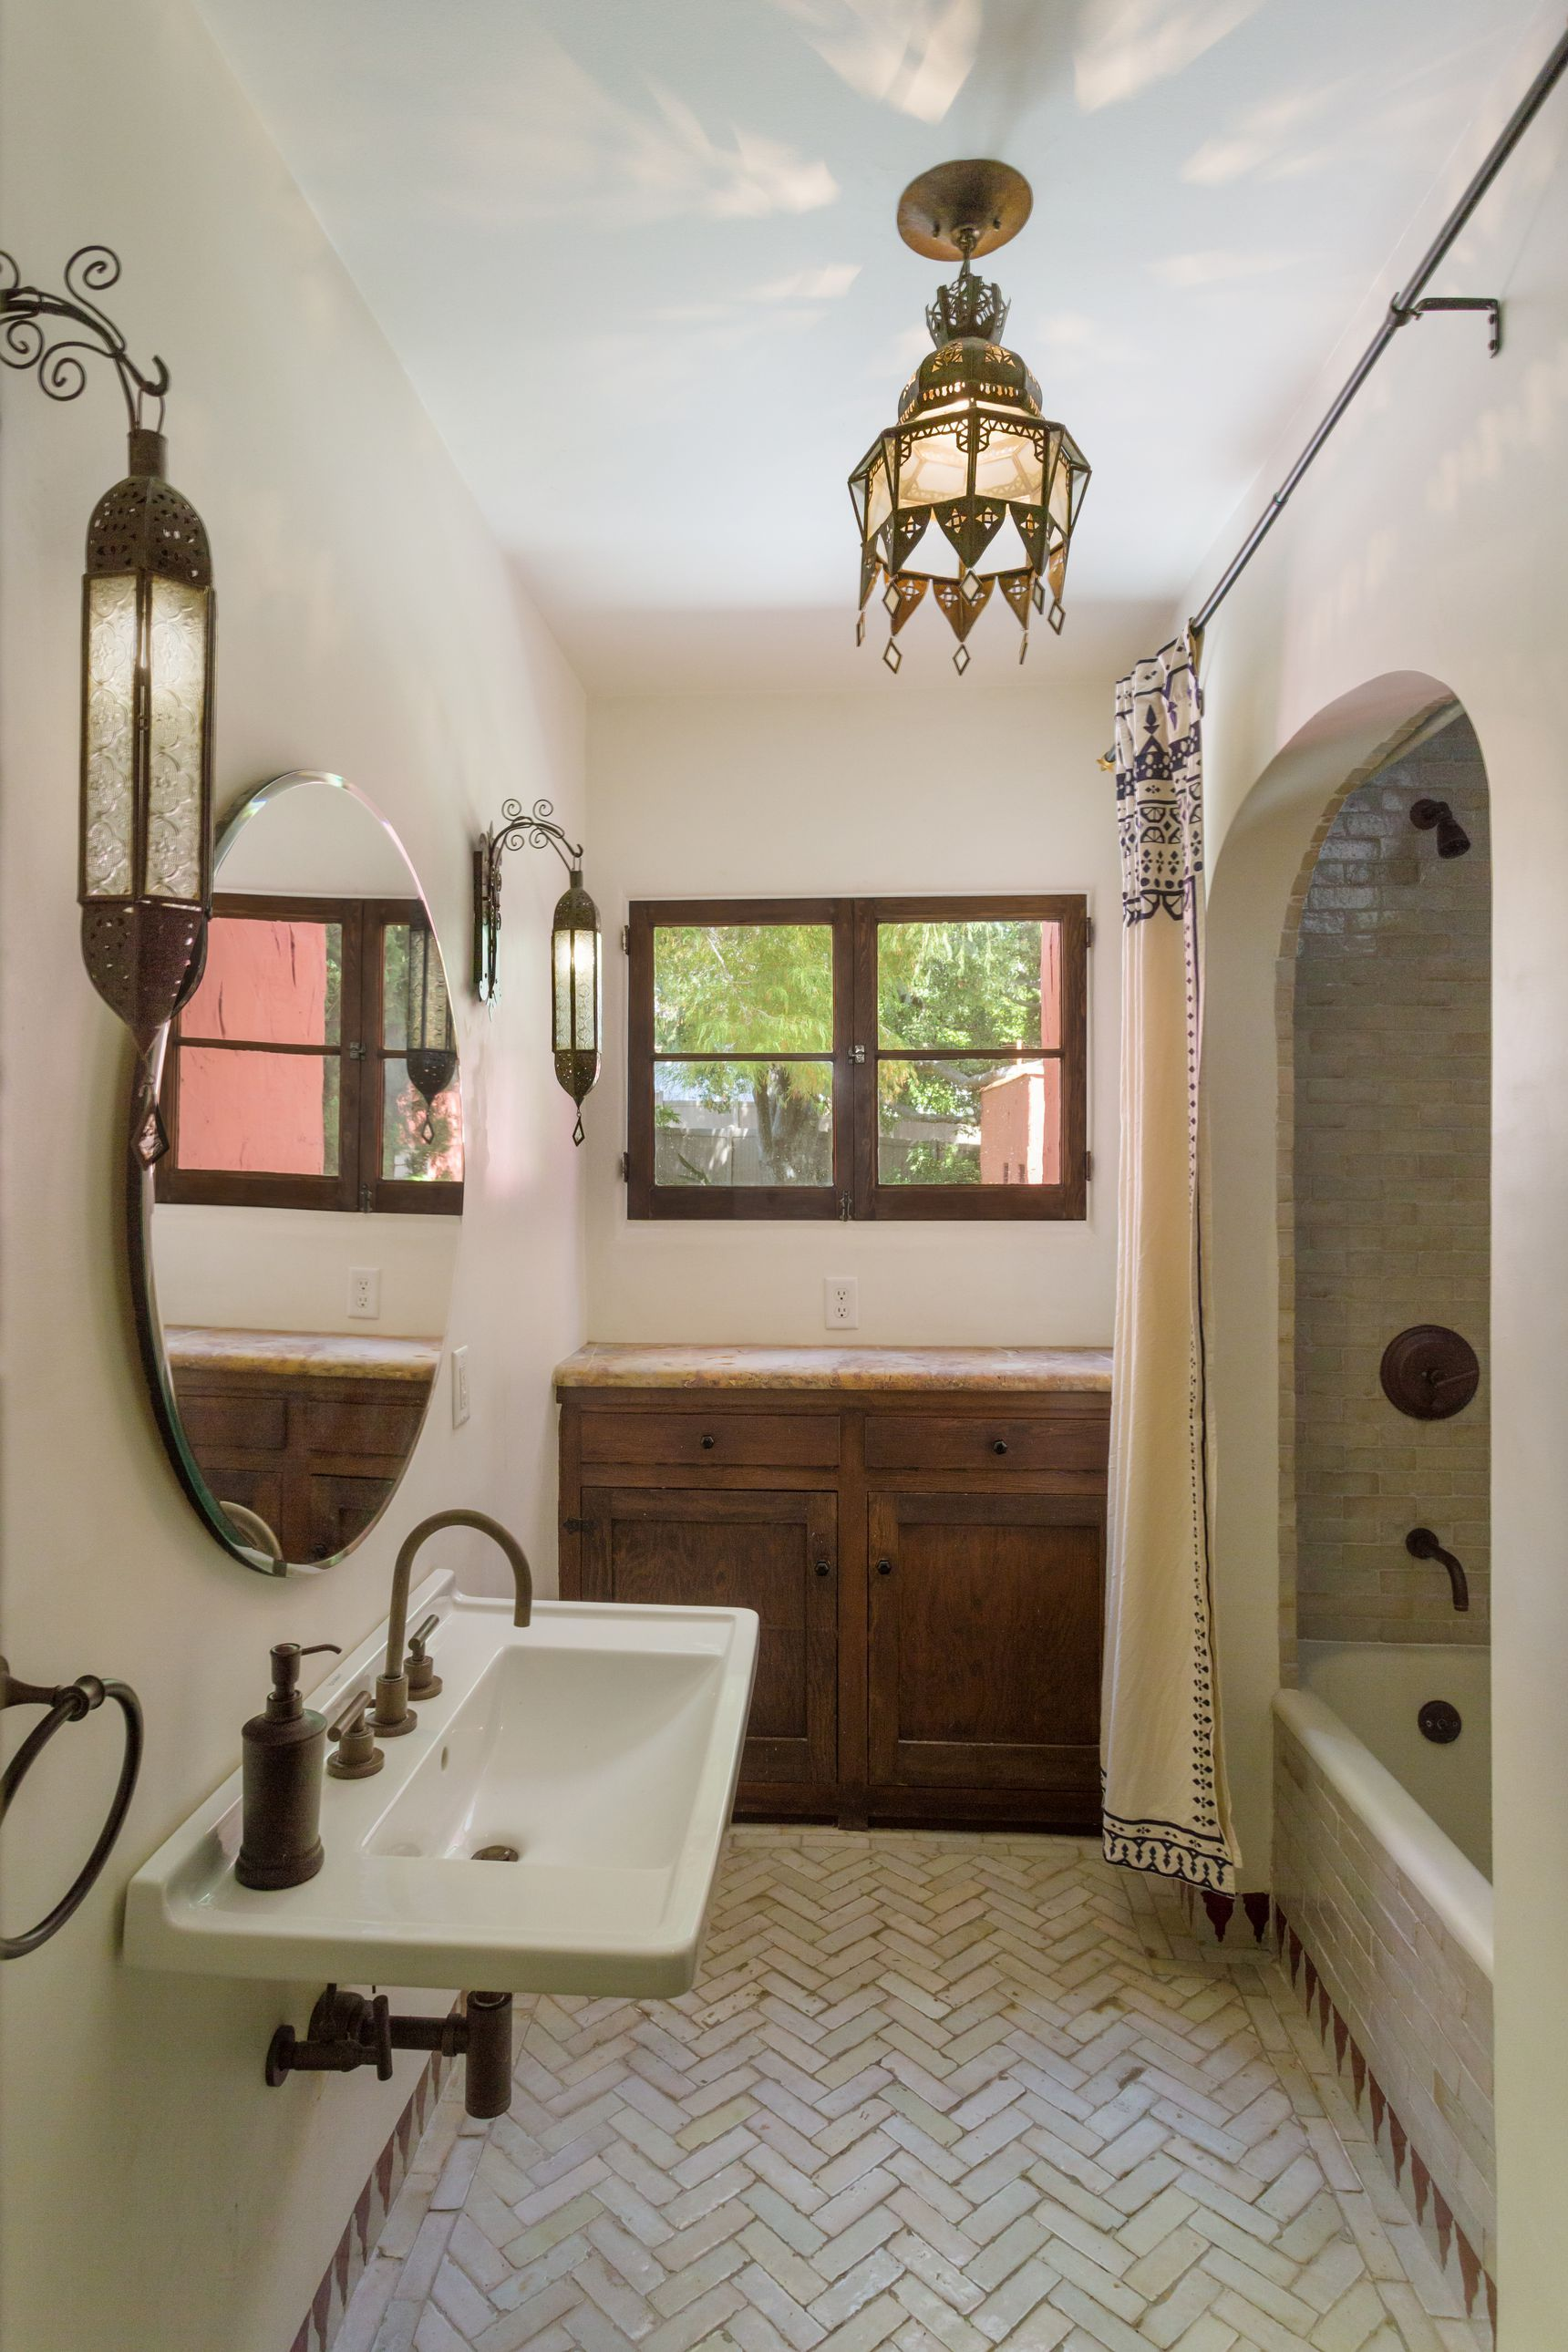 Spanish Style House Oozes Charm And Color For 875k In Glendale